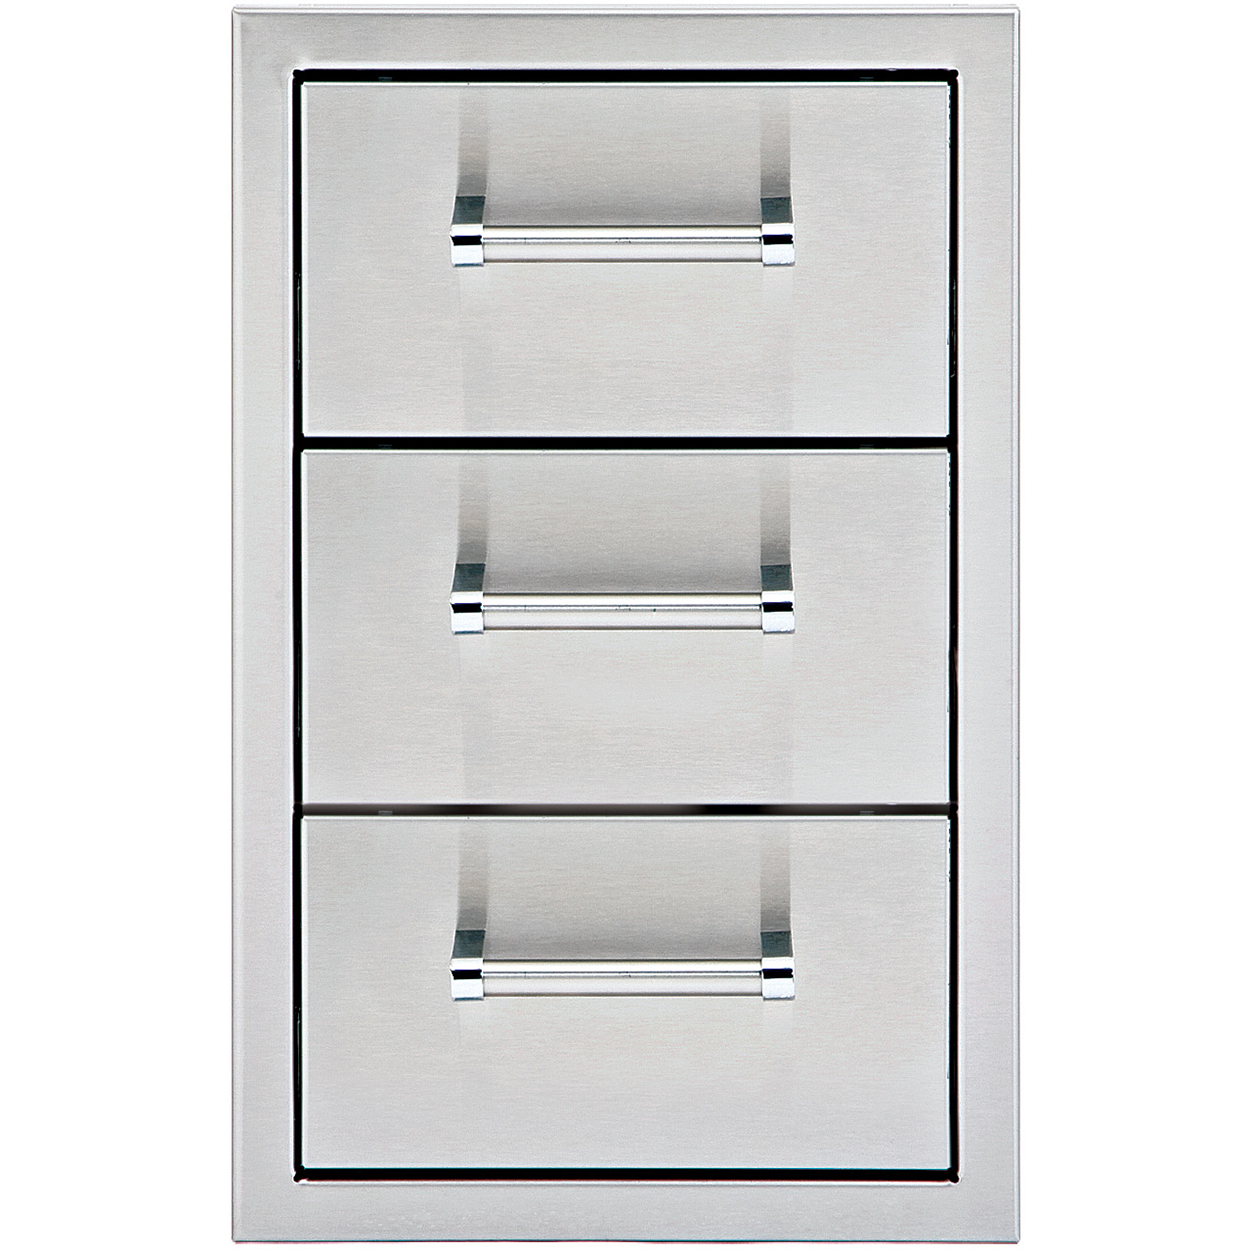 "Delta Heat 13"" Triple Drawer"